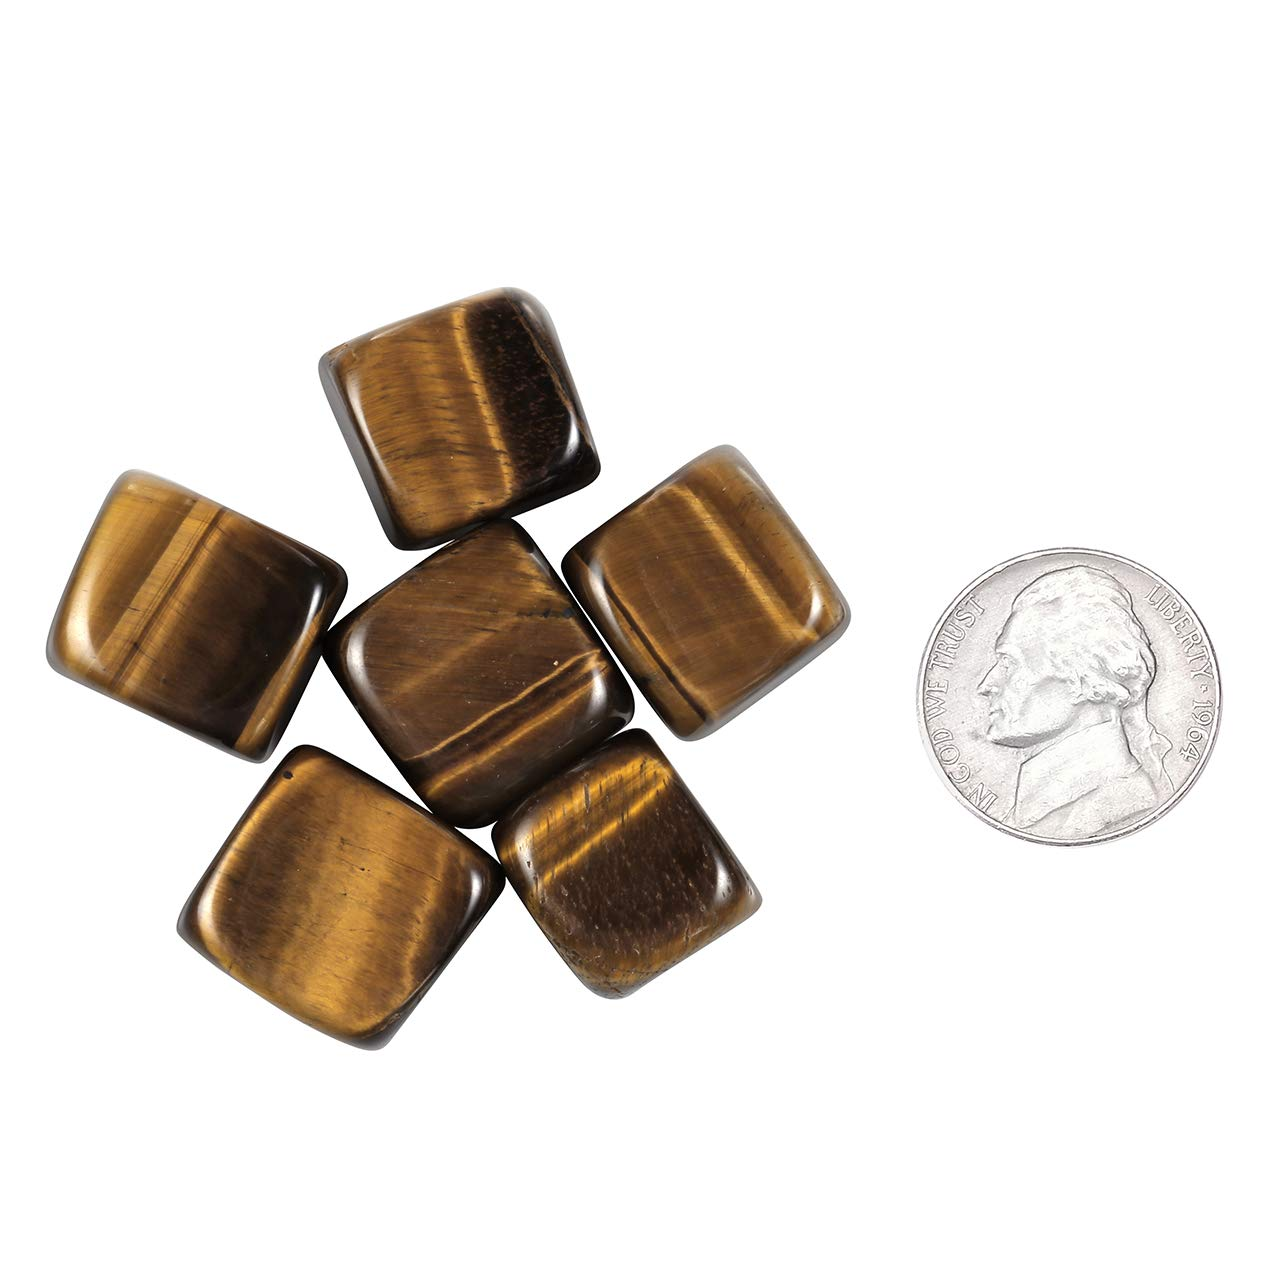 CrystalTears 0.33lb Bulk Natural Tiger Eye Tumbled Stones Polished Crystals for Reiki,Healing,Wicca,Home Decor